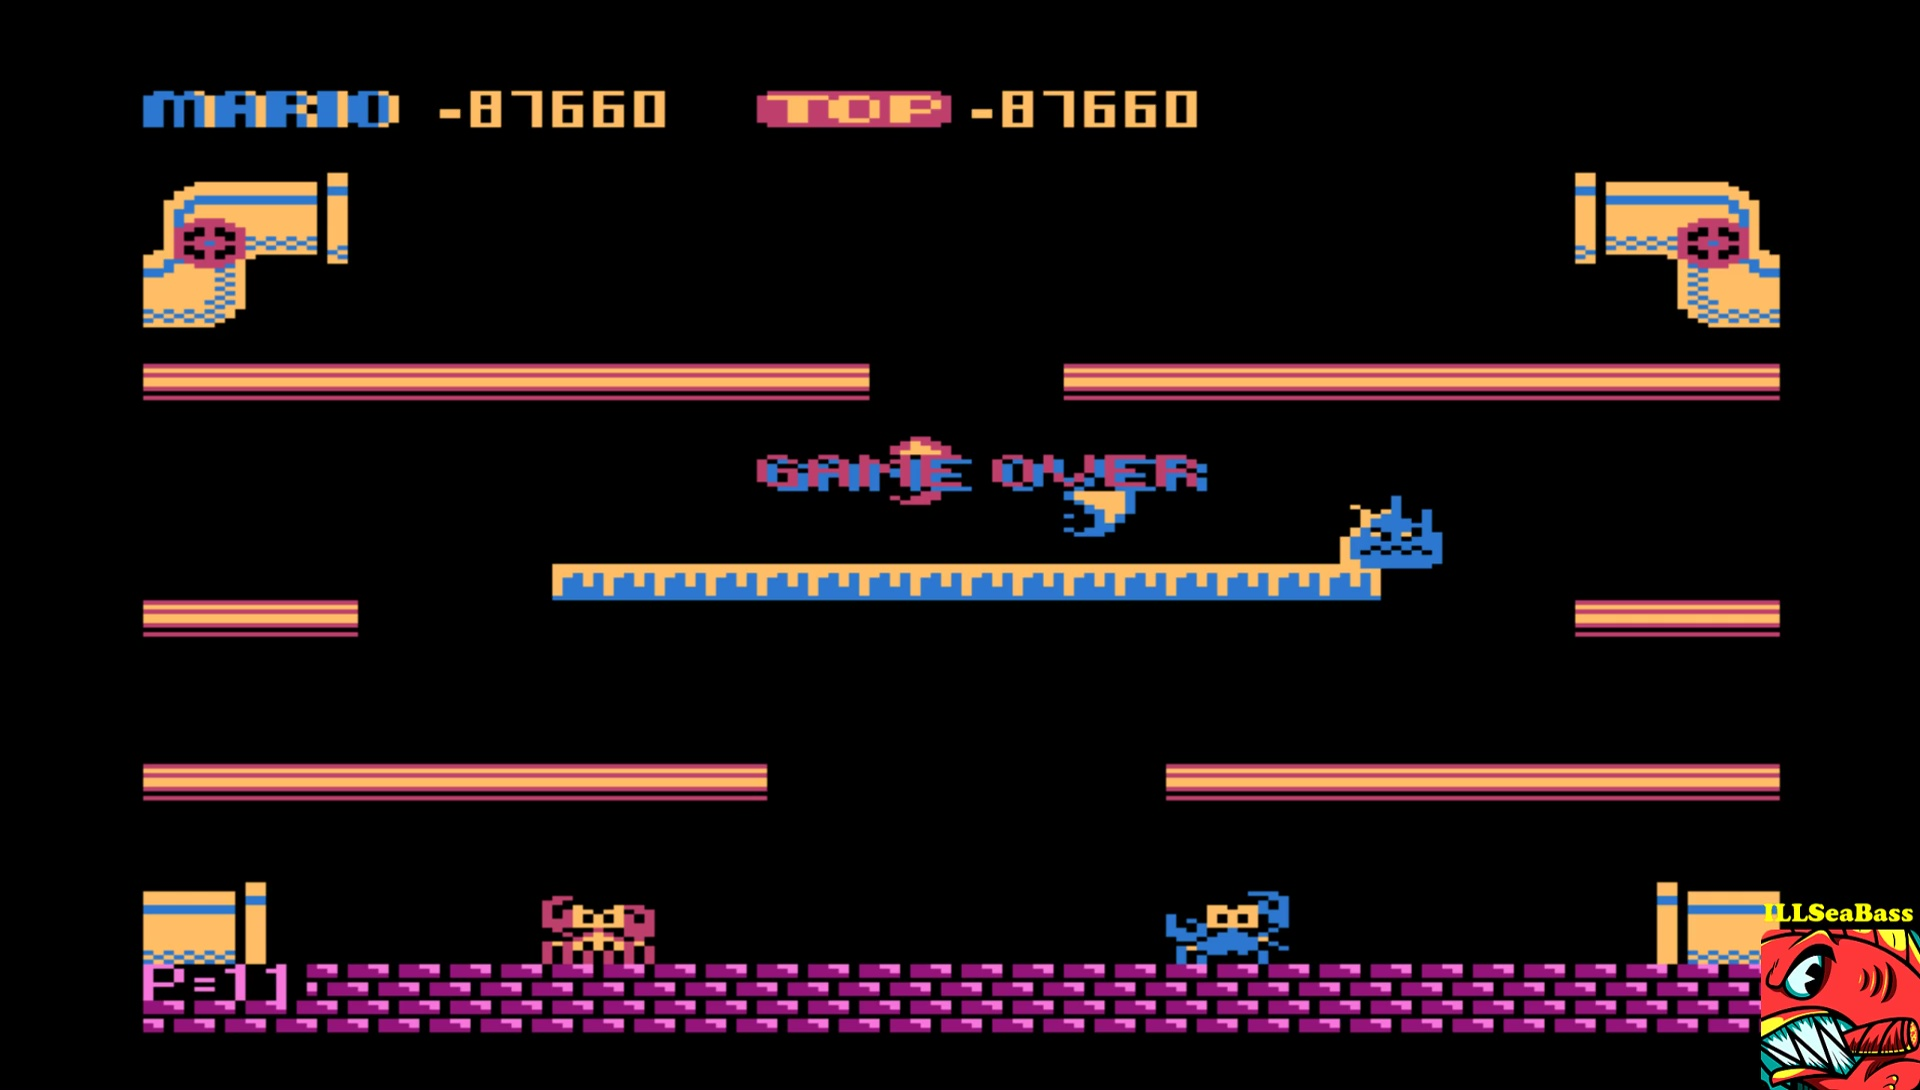 ILLSeaBass: Mario Bros (Atari 400/800/XL/XE Emulated) 87,660 points on 2017-06-14 08:42:33